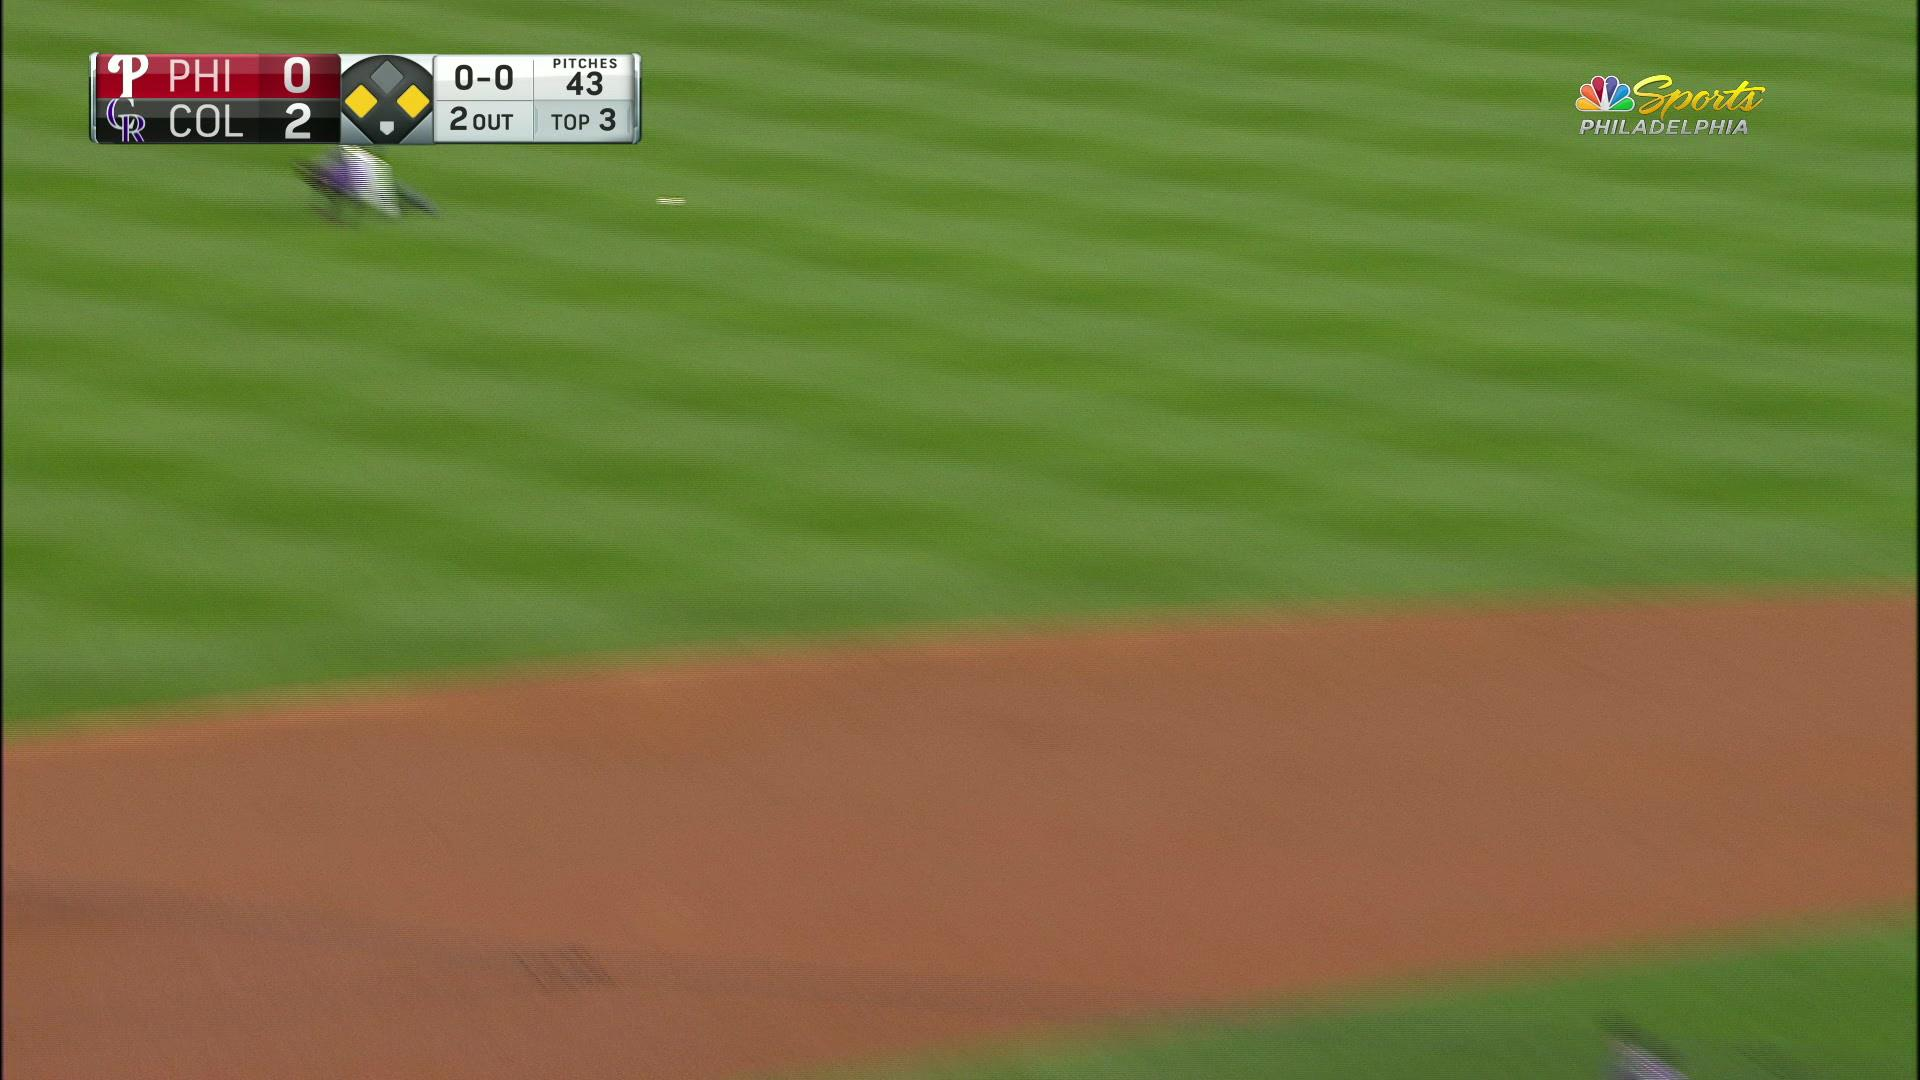 César Hernández cuts the Phillies deficit in half with RBI single